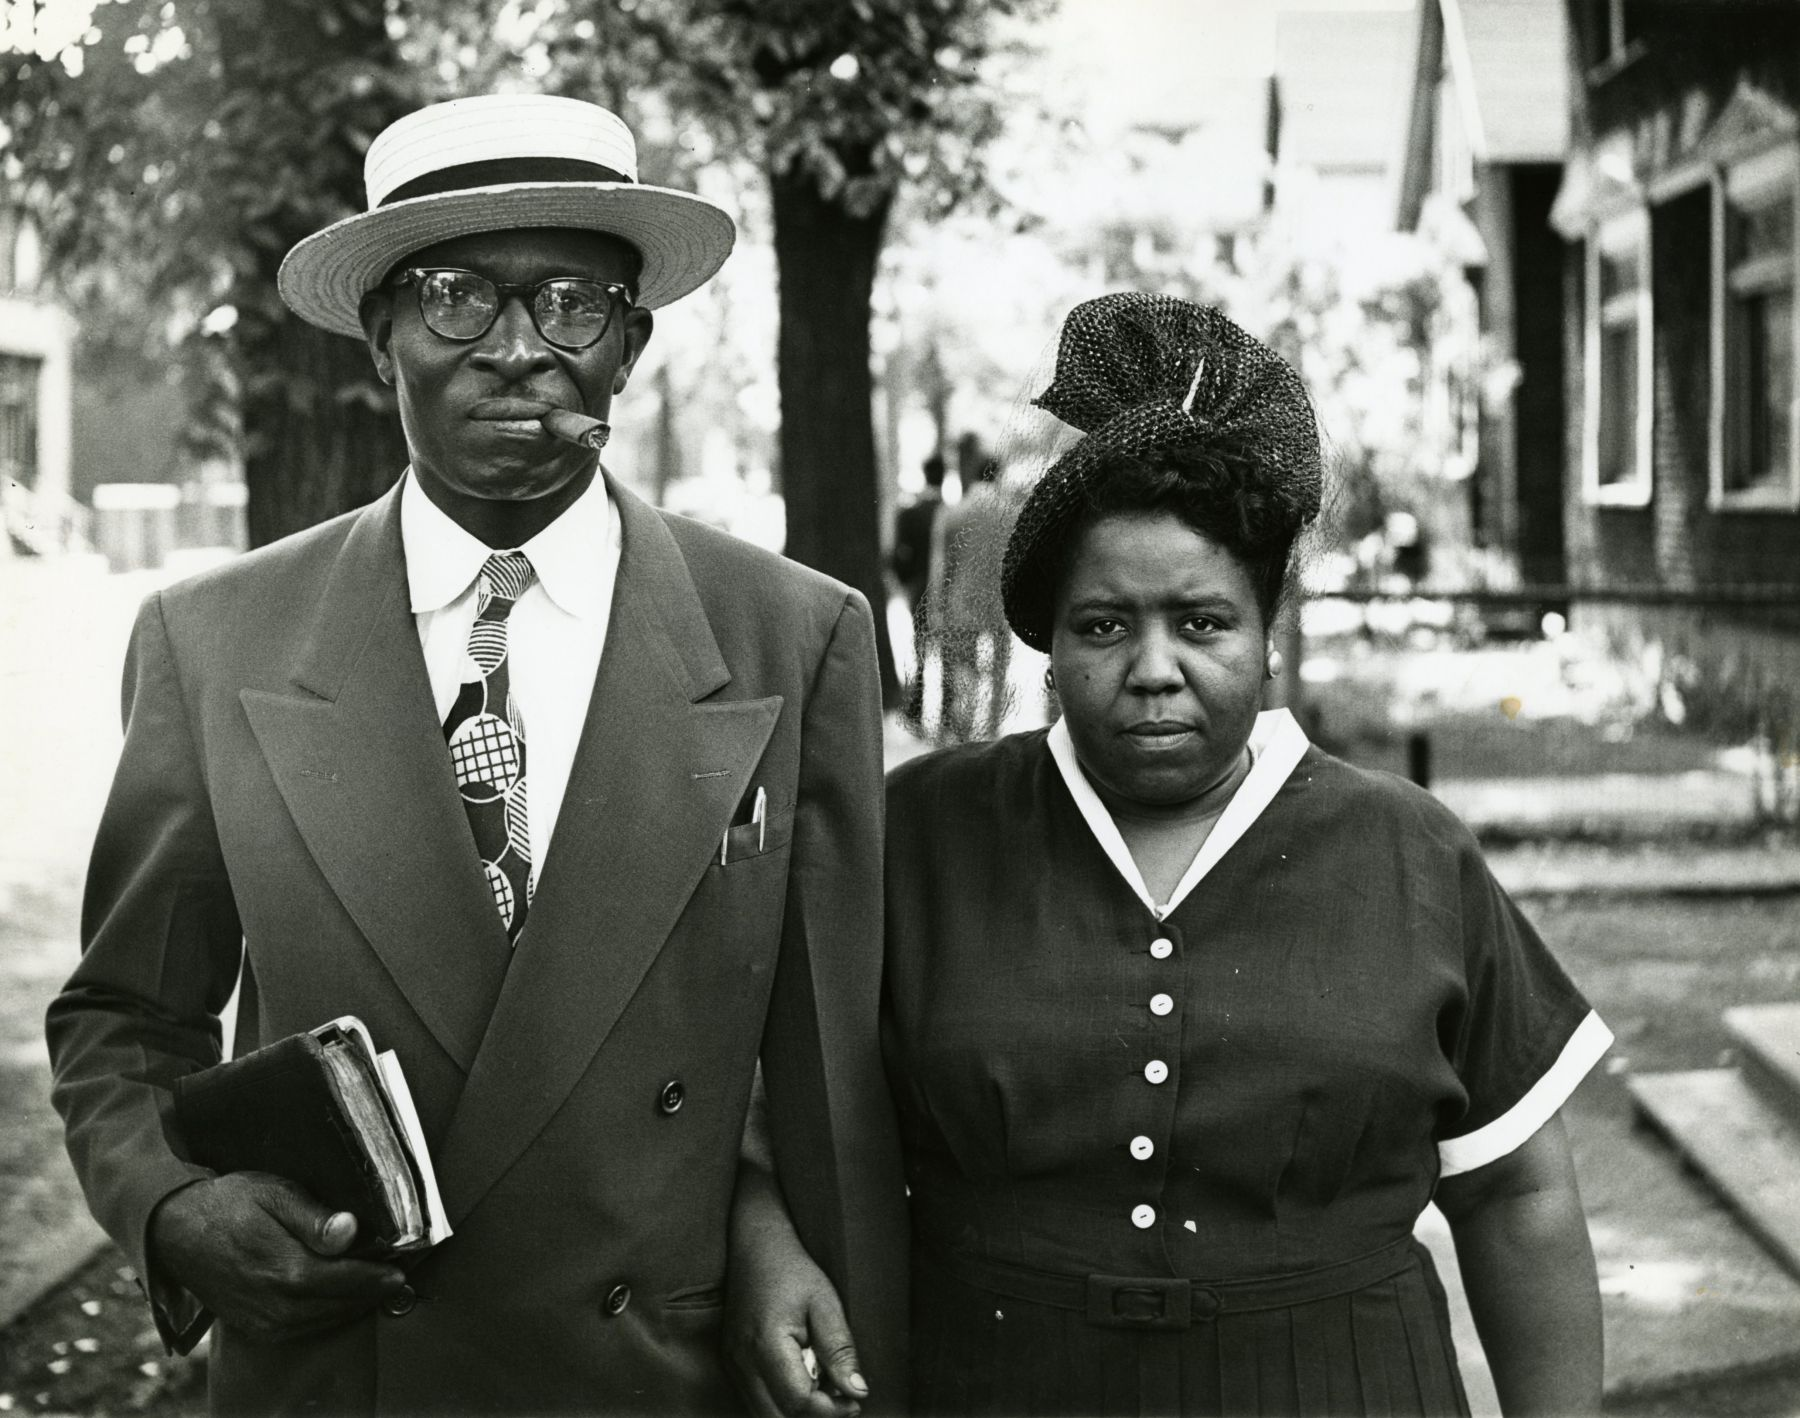 Gordon Parks - Husband and Wife, Sunday Morning, Detroit, Michigan, 1950 - Howard Greenberg Gallery - 2019